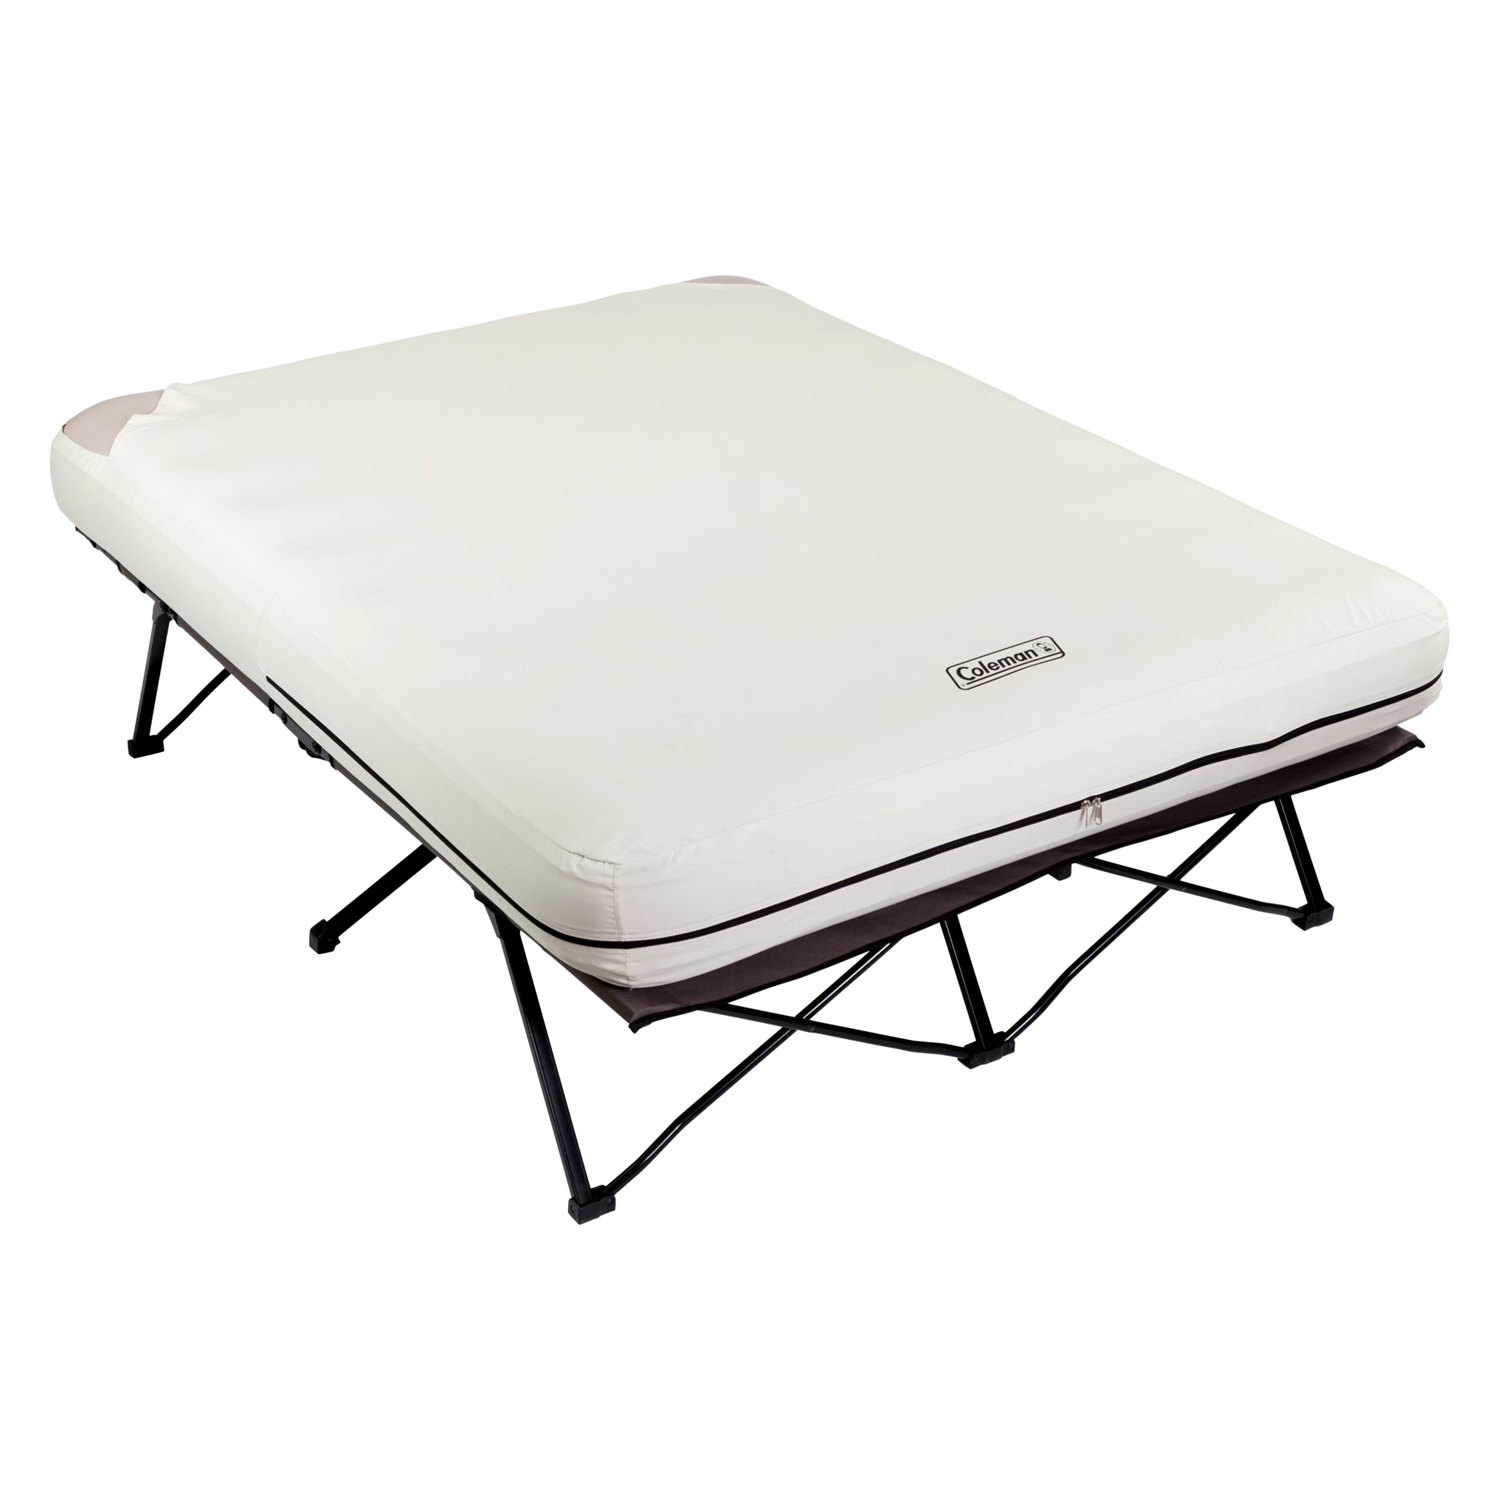 Coleman 174 2000020270 Cot Queen Framed Air Bed